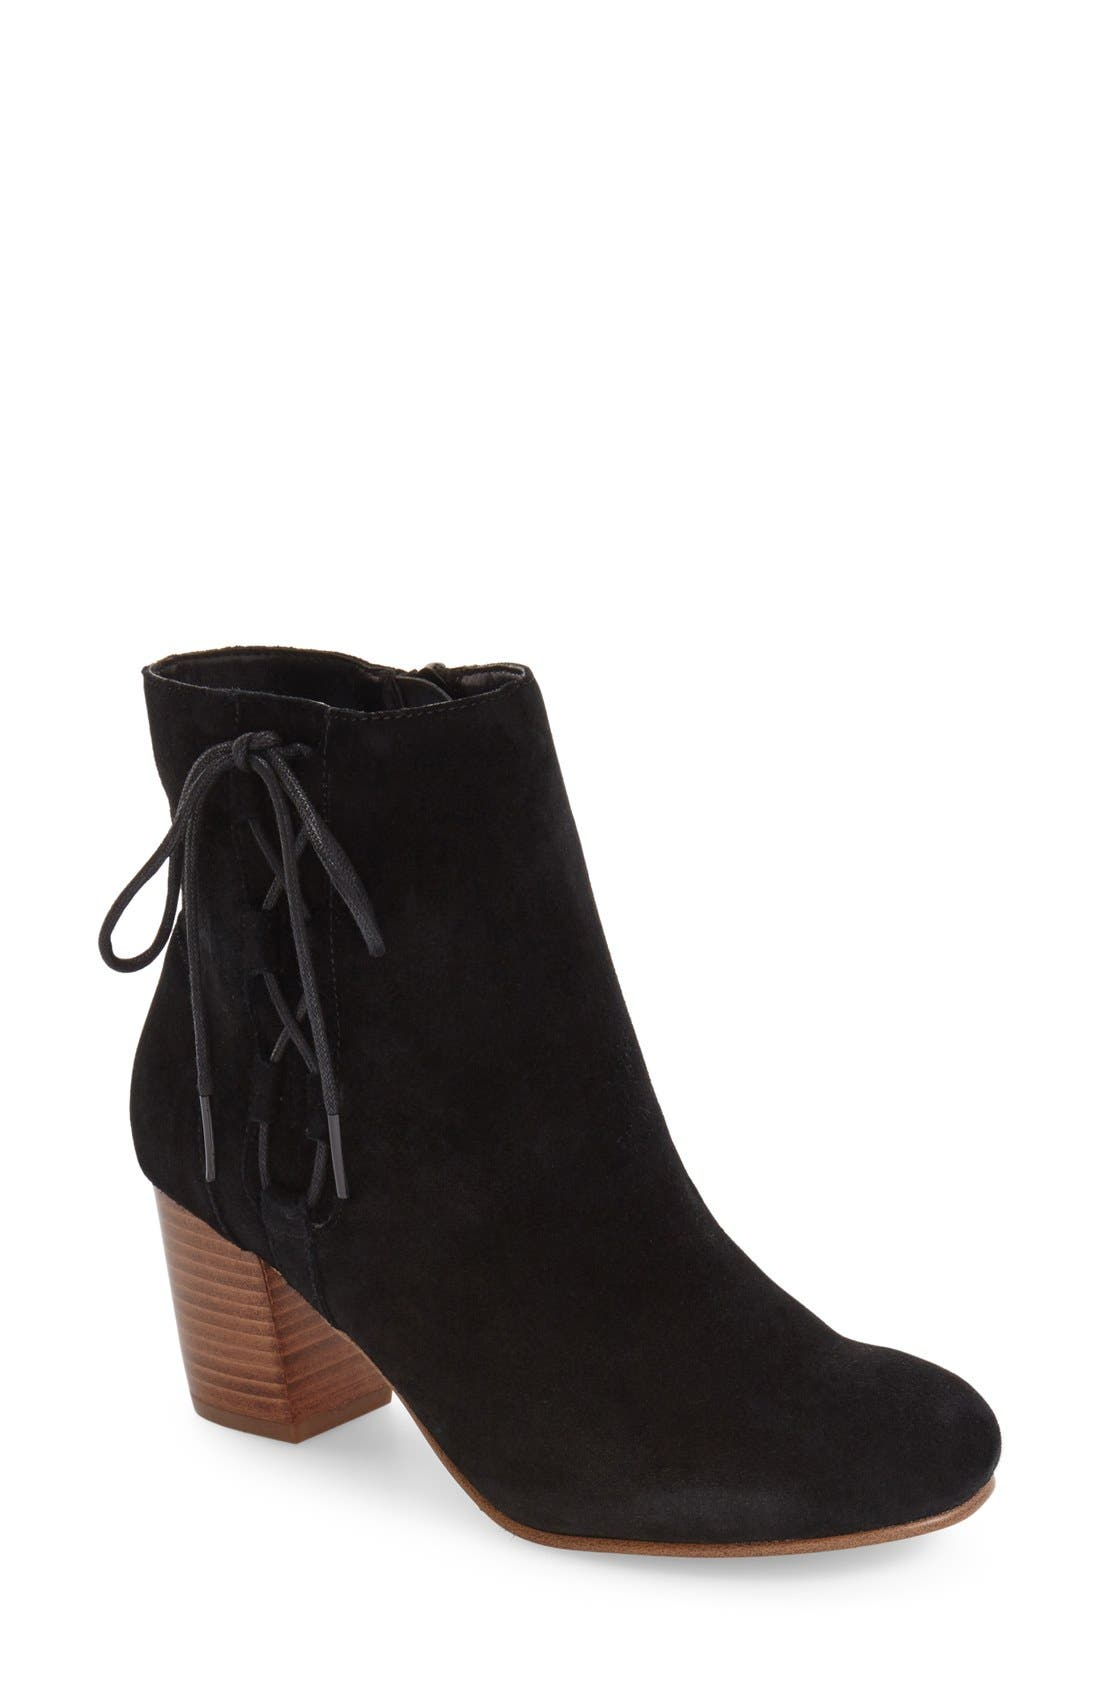 Alternate Image 1 Selected - Sole Society Renzo Bootie (Women)